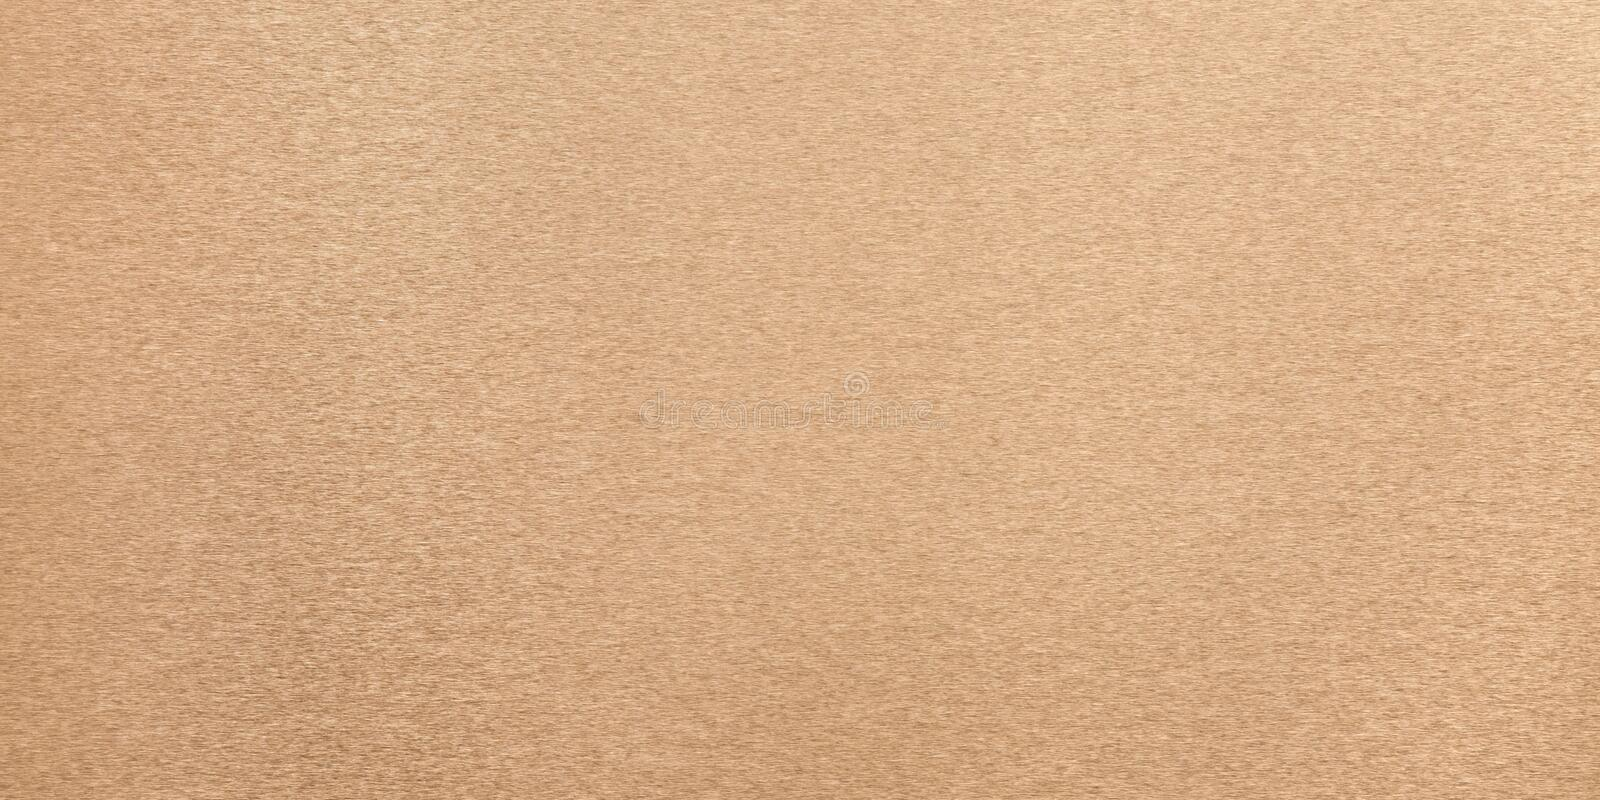 Seamless metallic texture and pattern for background template. Seamless texture background pattern wallpaper stock photo